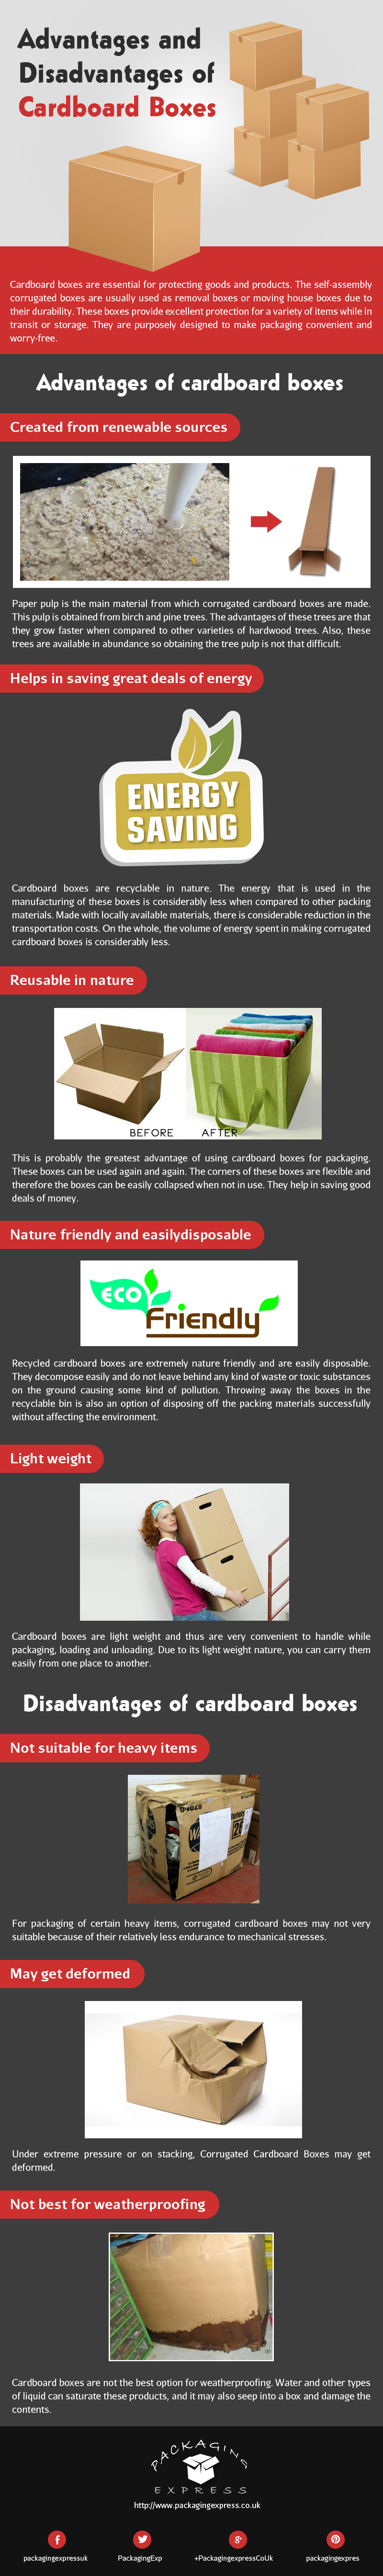 Advantages and Disadvantages of Cardboard Boxes [Infographic]